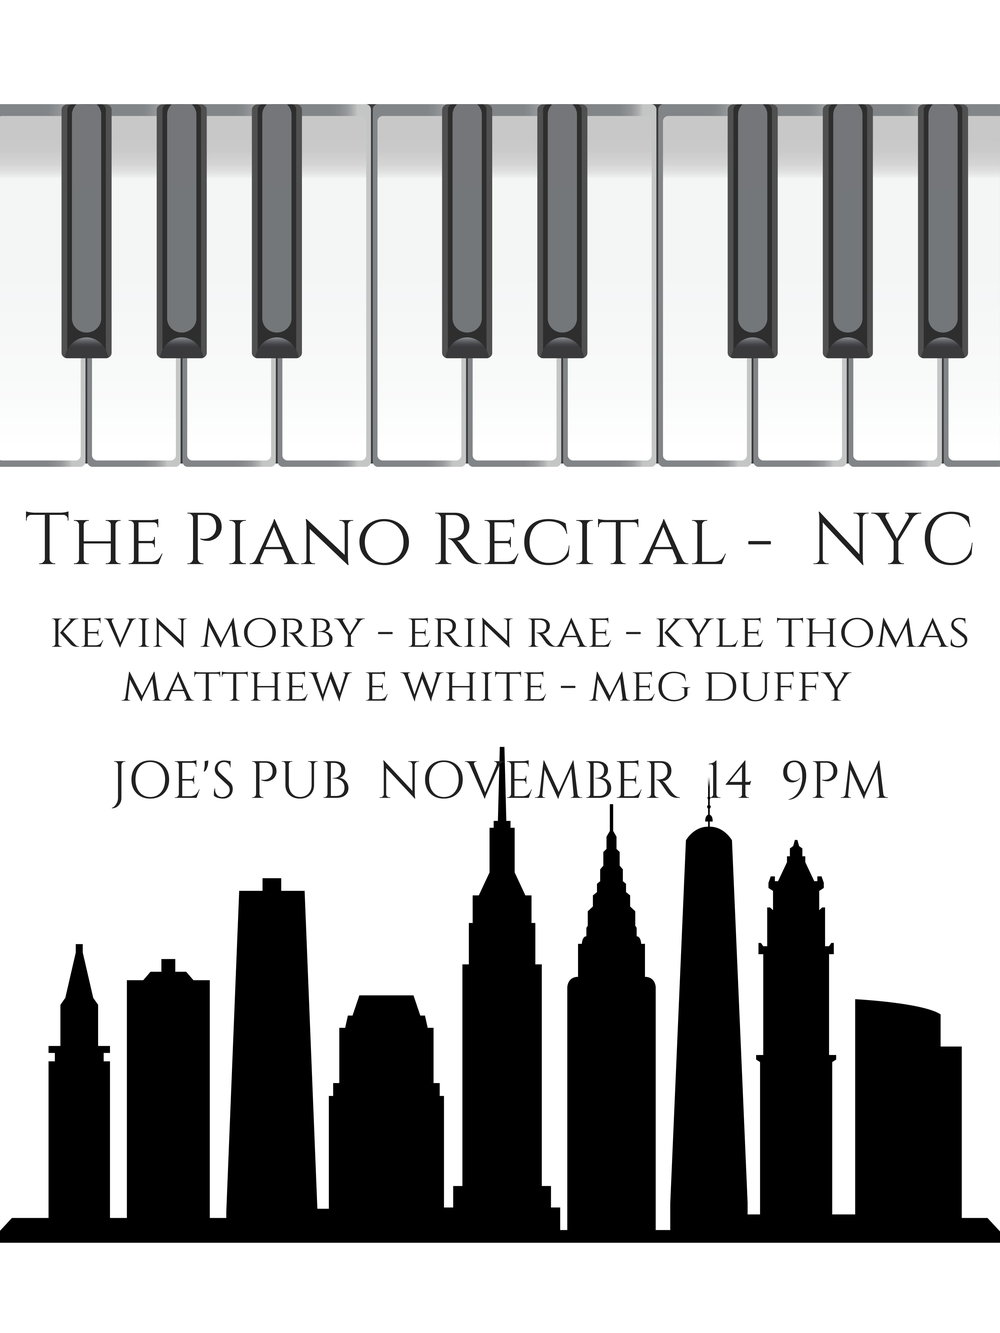 The Piano Recital - NYC(3) (1)-1.jpg